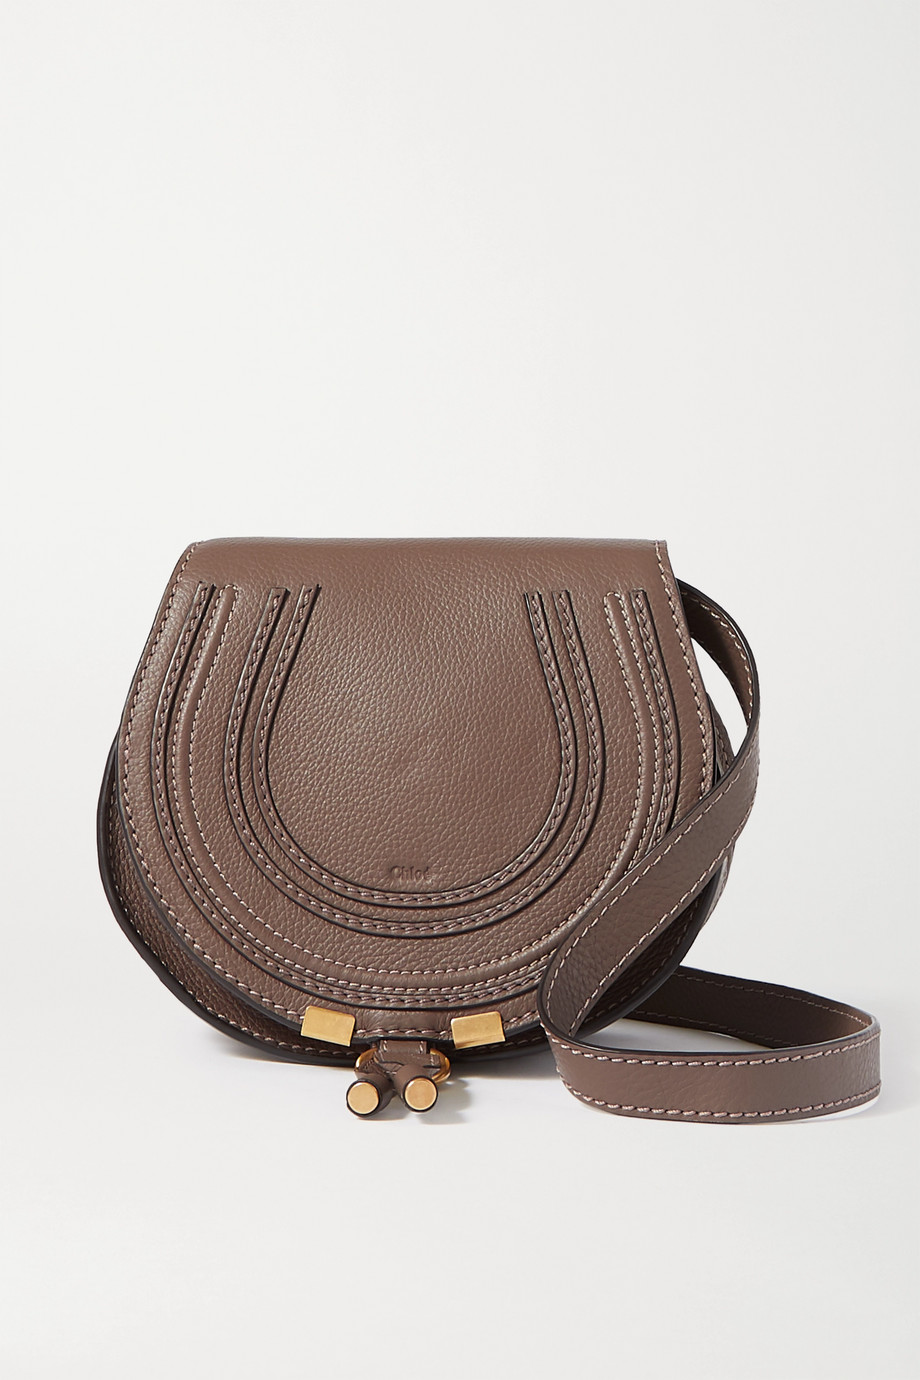 Chloé Marcie mini textured-leather shoulder bag